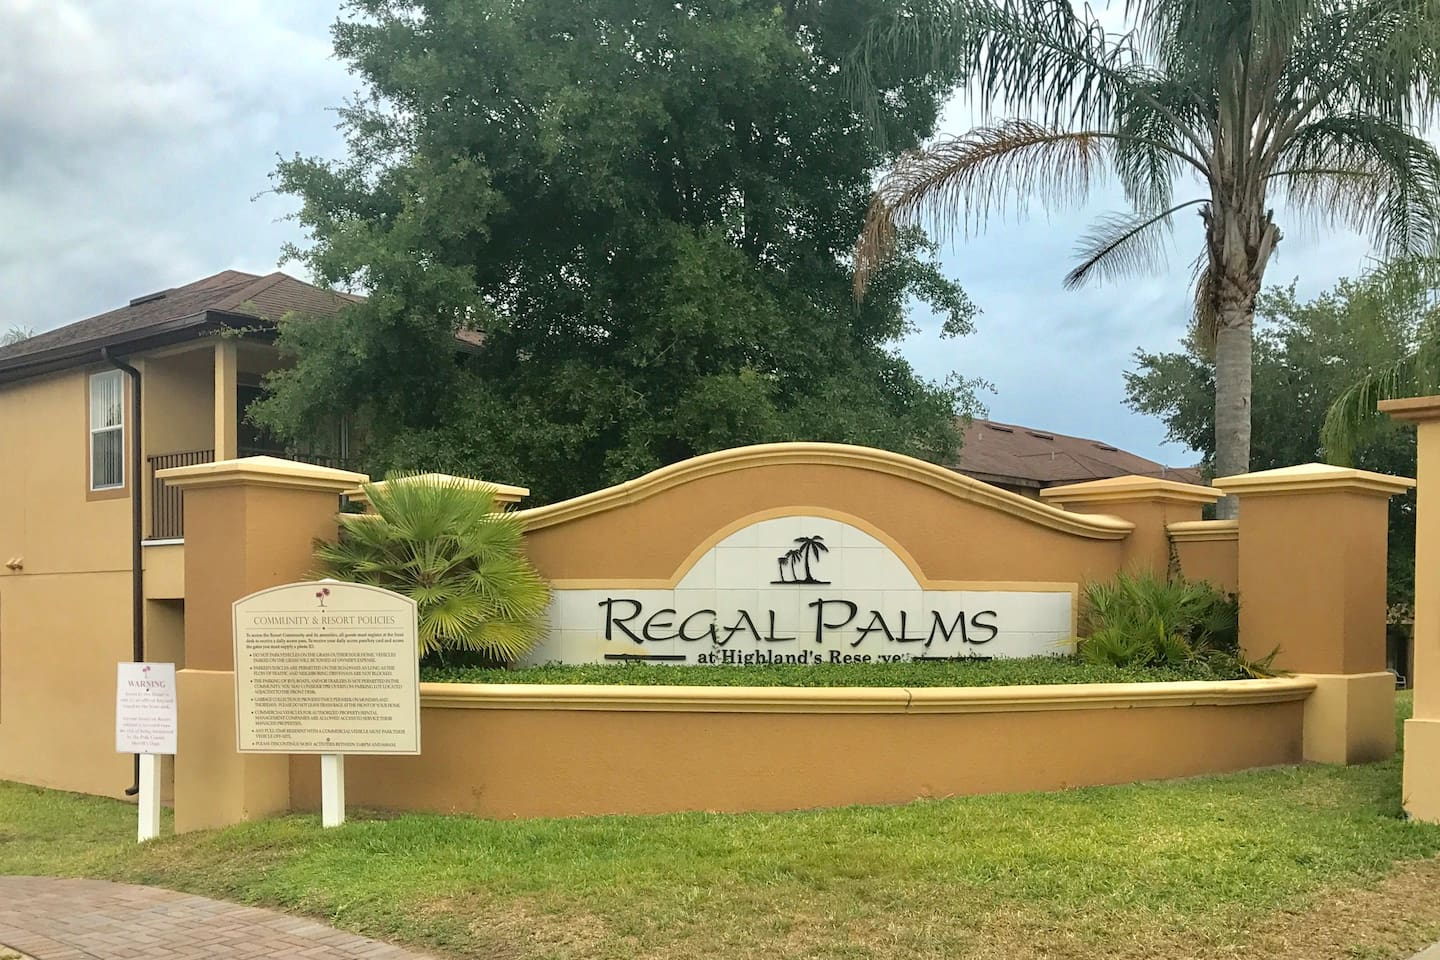 Regal Palms Resort is a beautiful gated community